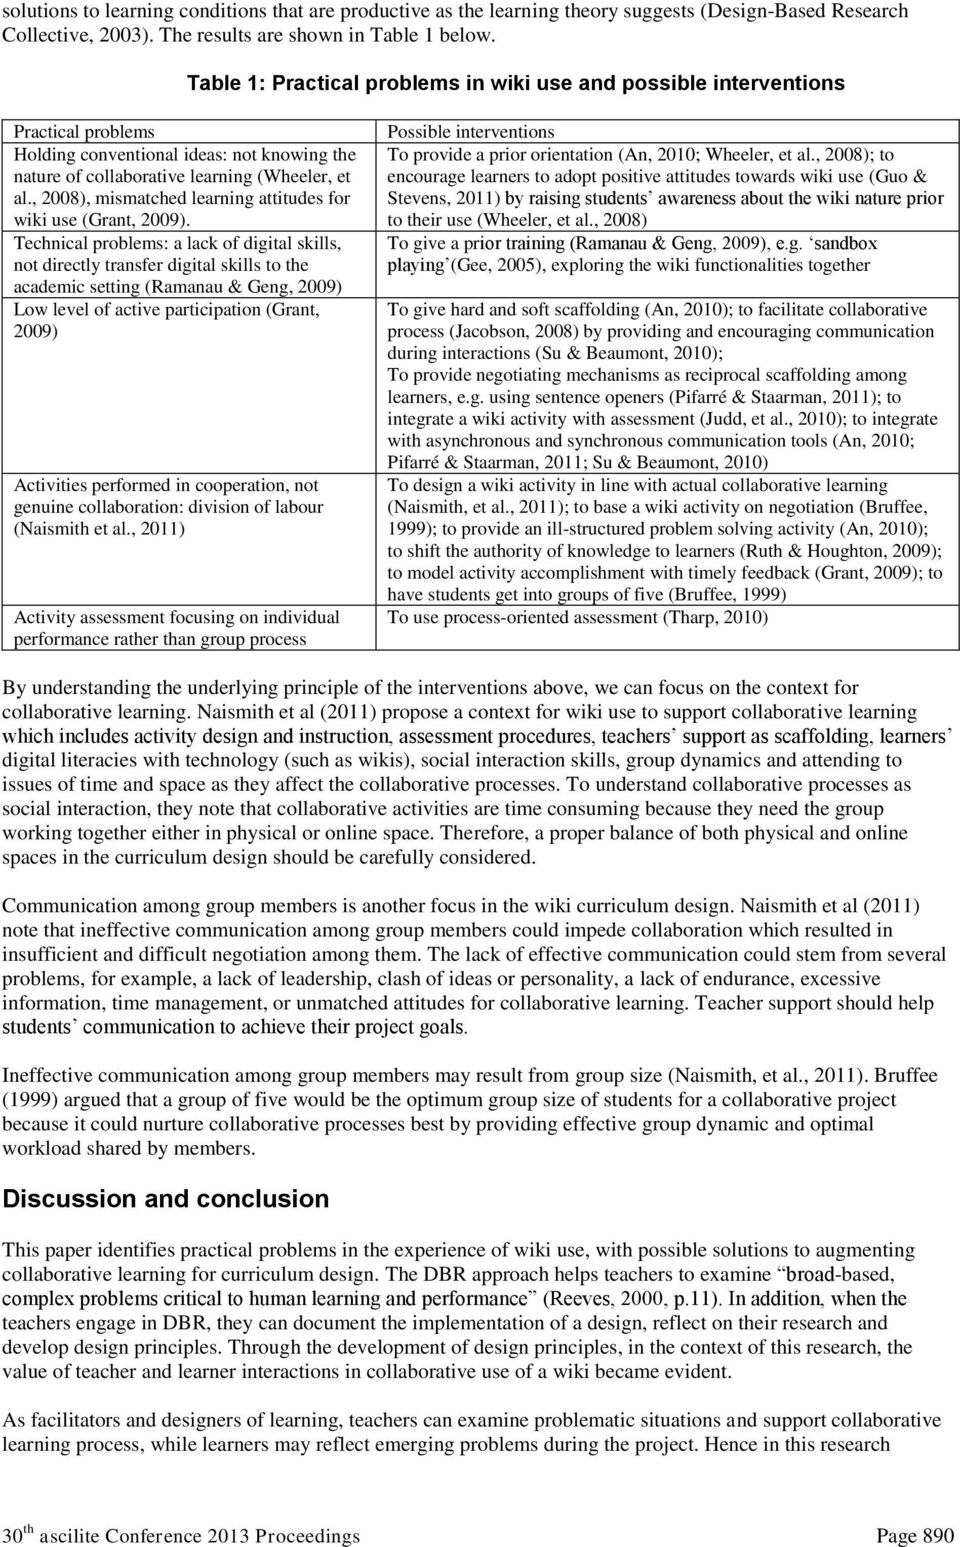 Wiki Based Interventions A Curriculum Design For Collaborative